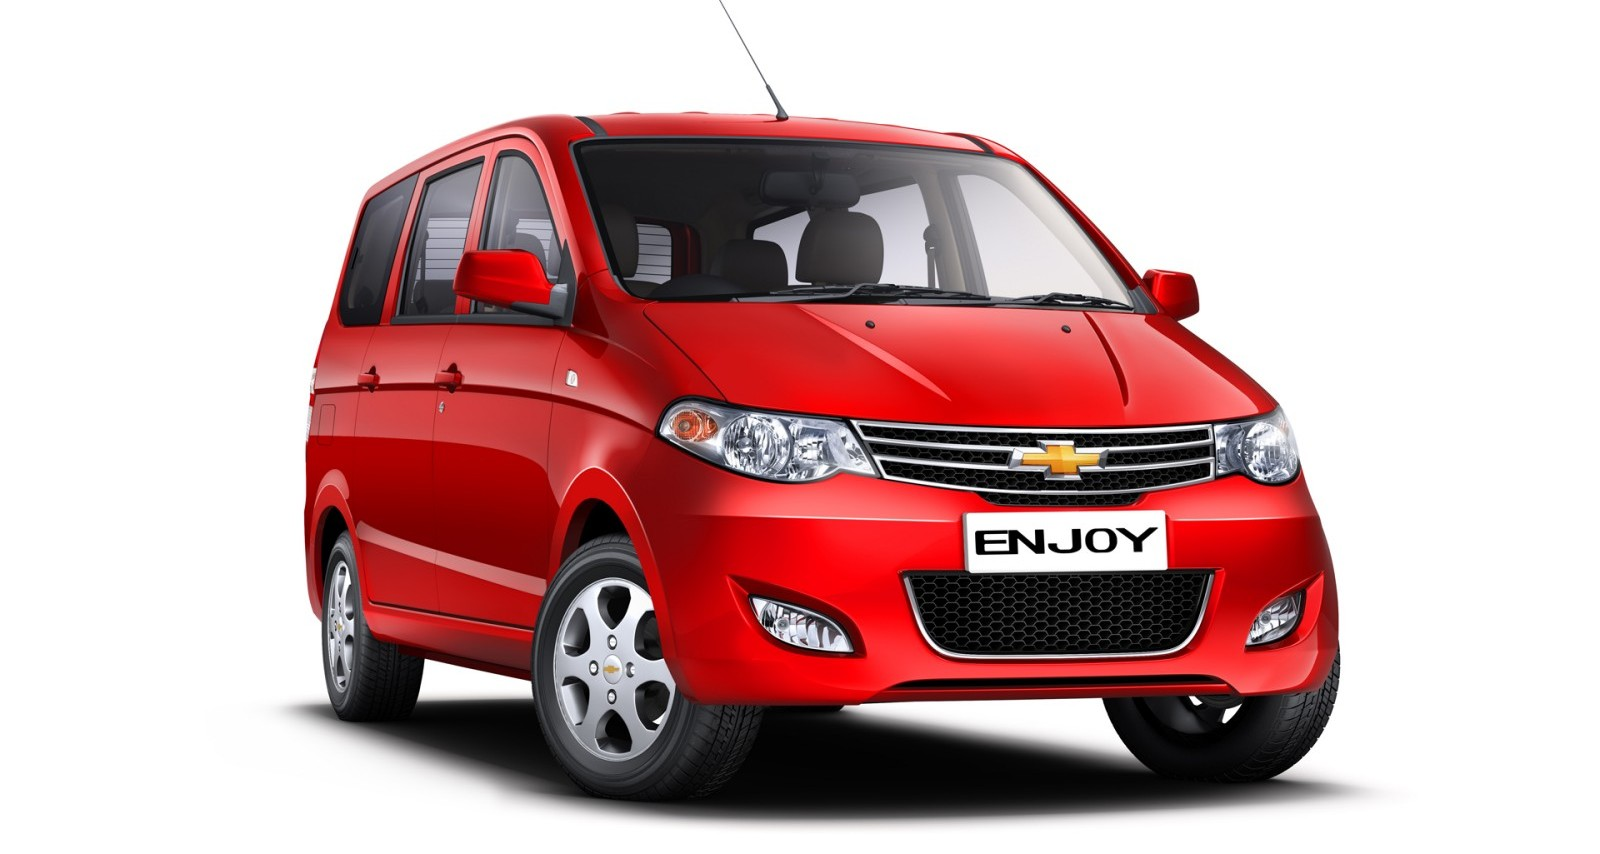 Chevrolet Enjoy diesel engine has problems?